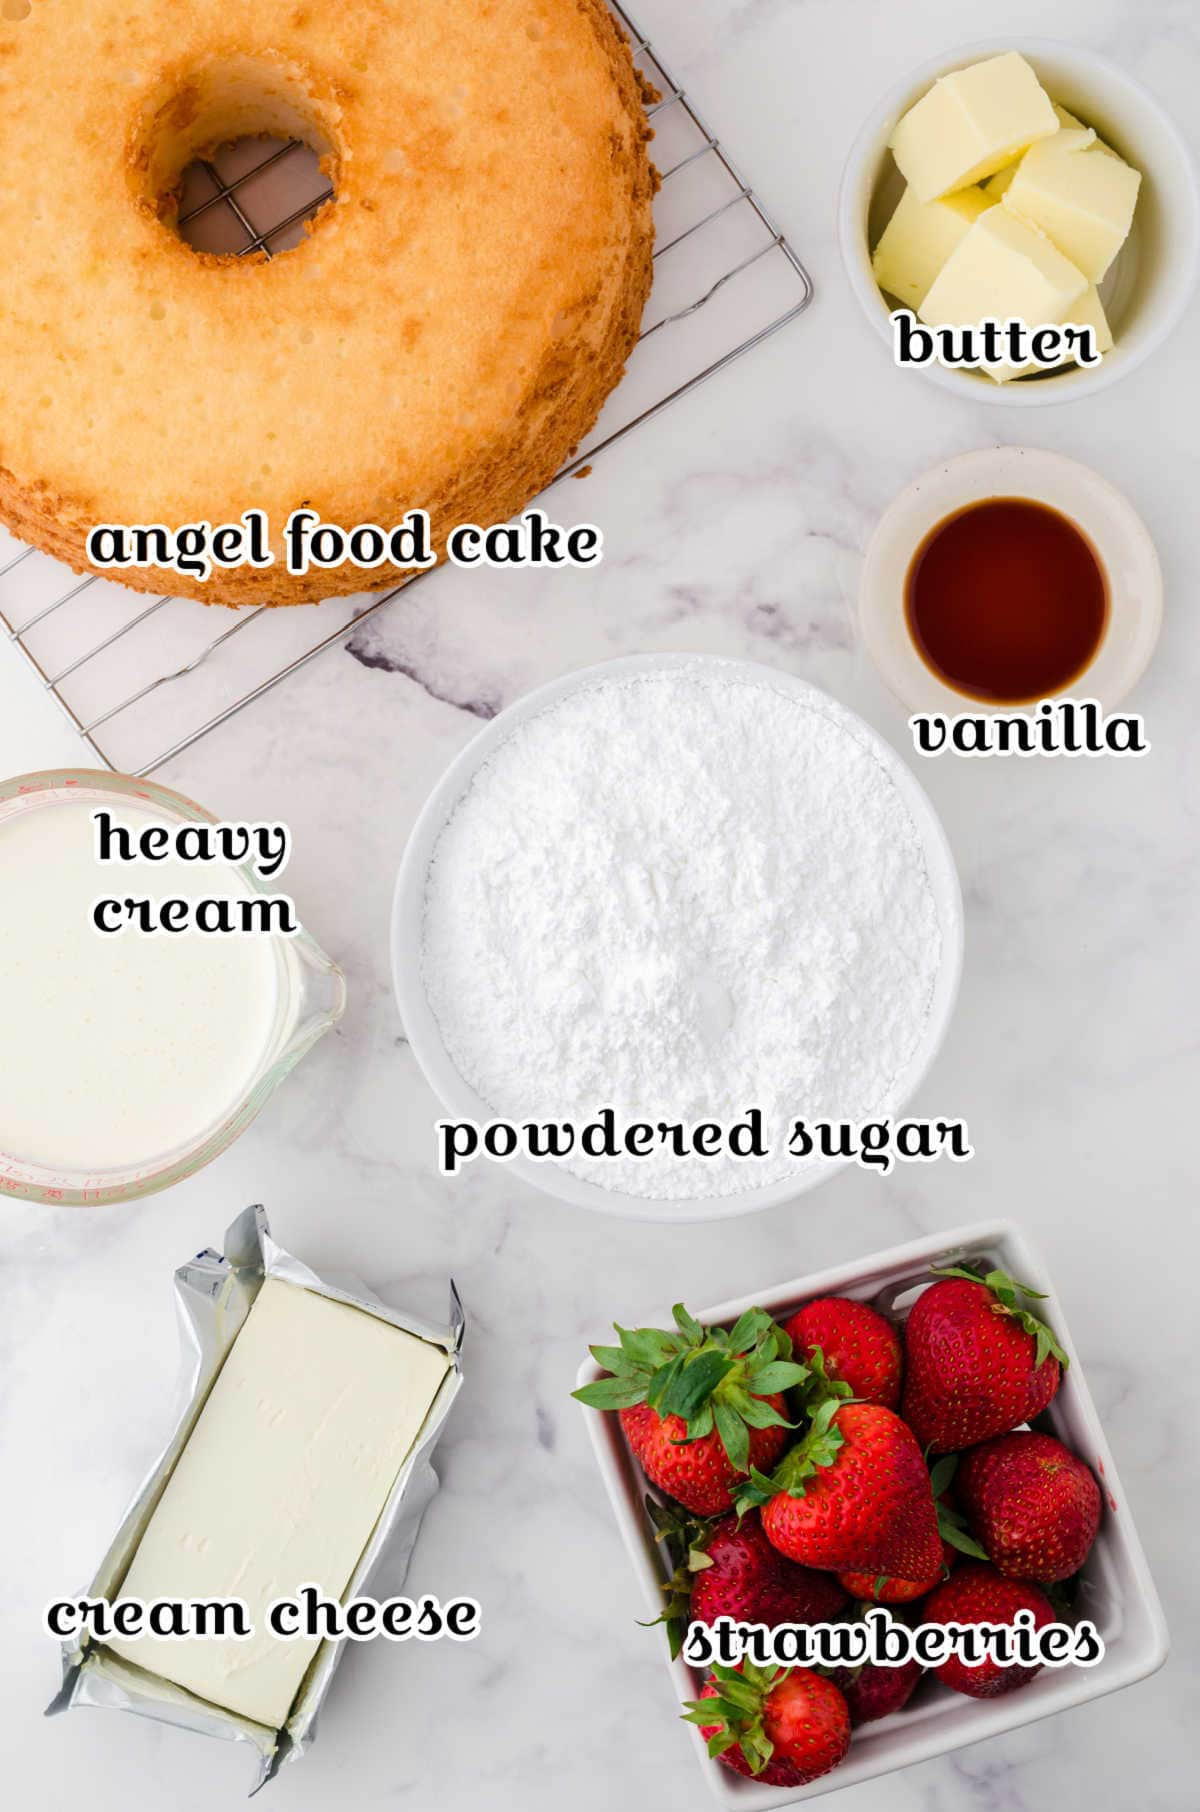 Labeled ingredients for the strawberry angel food cake.